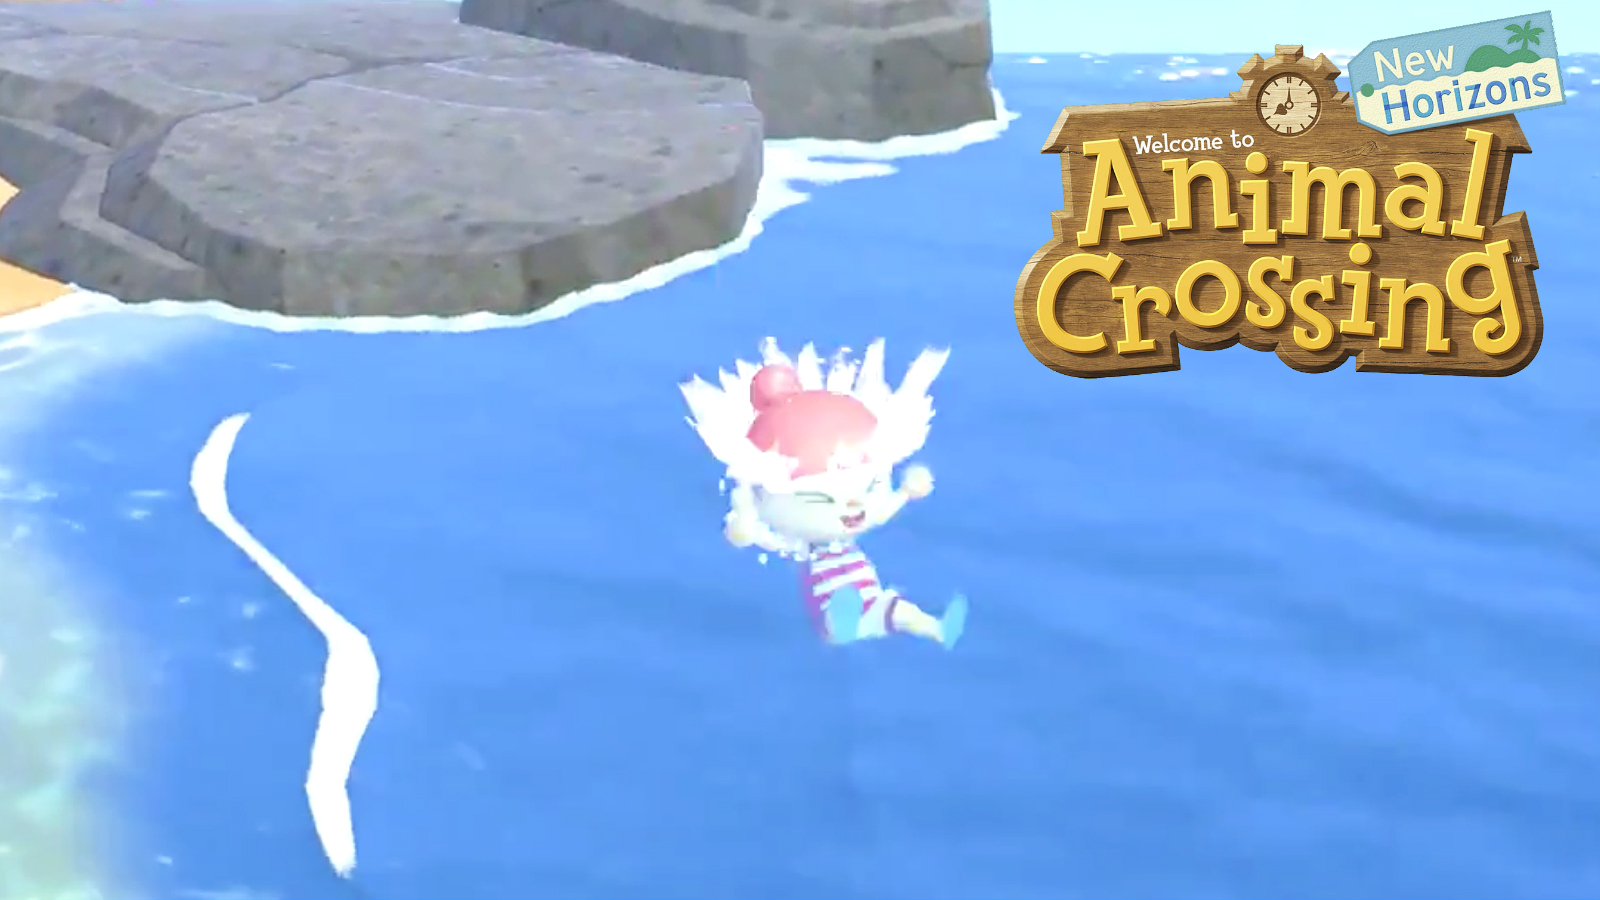 Animal crossing swimming update wave 1